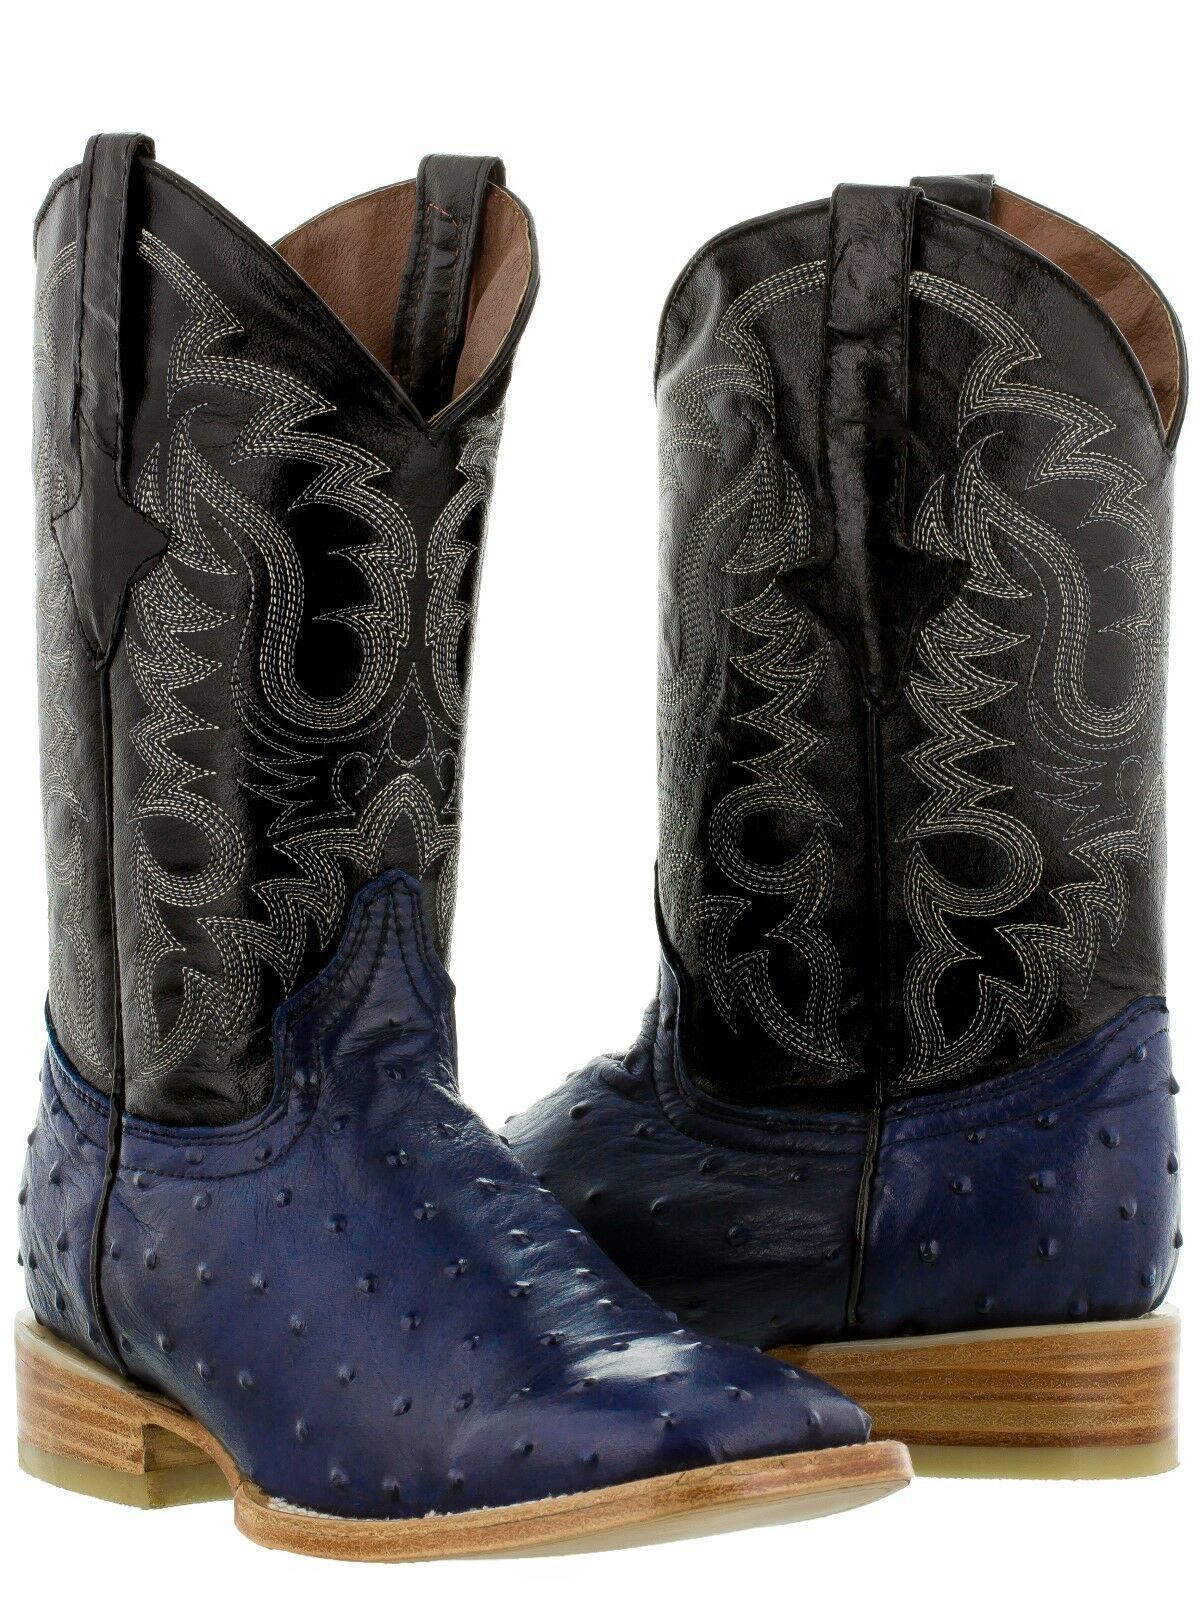 Men's Cowboy Boots Ostrich Quill bluee Leather Western Wear Rodeo Square Toe New